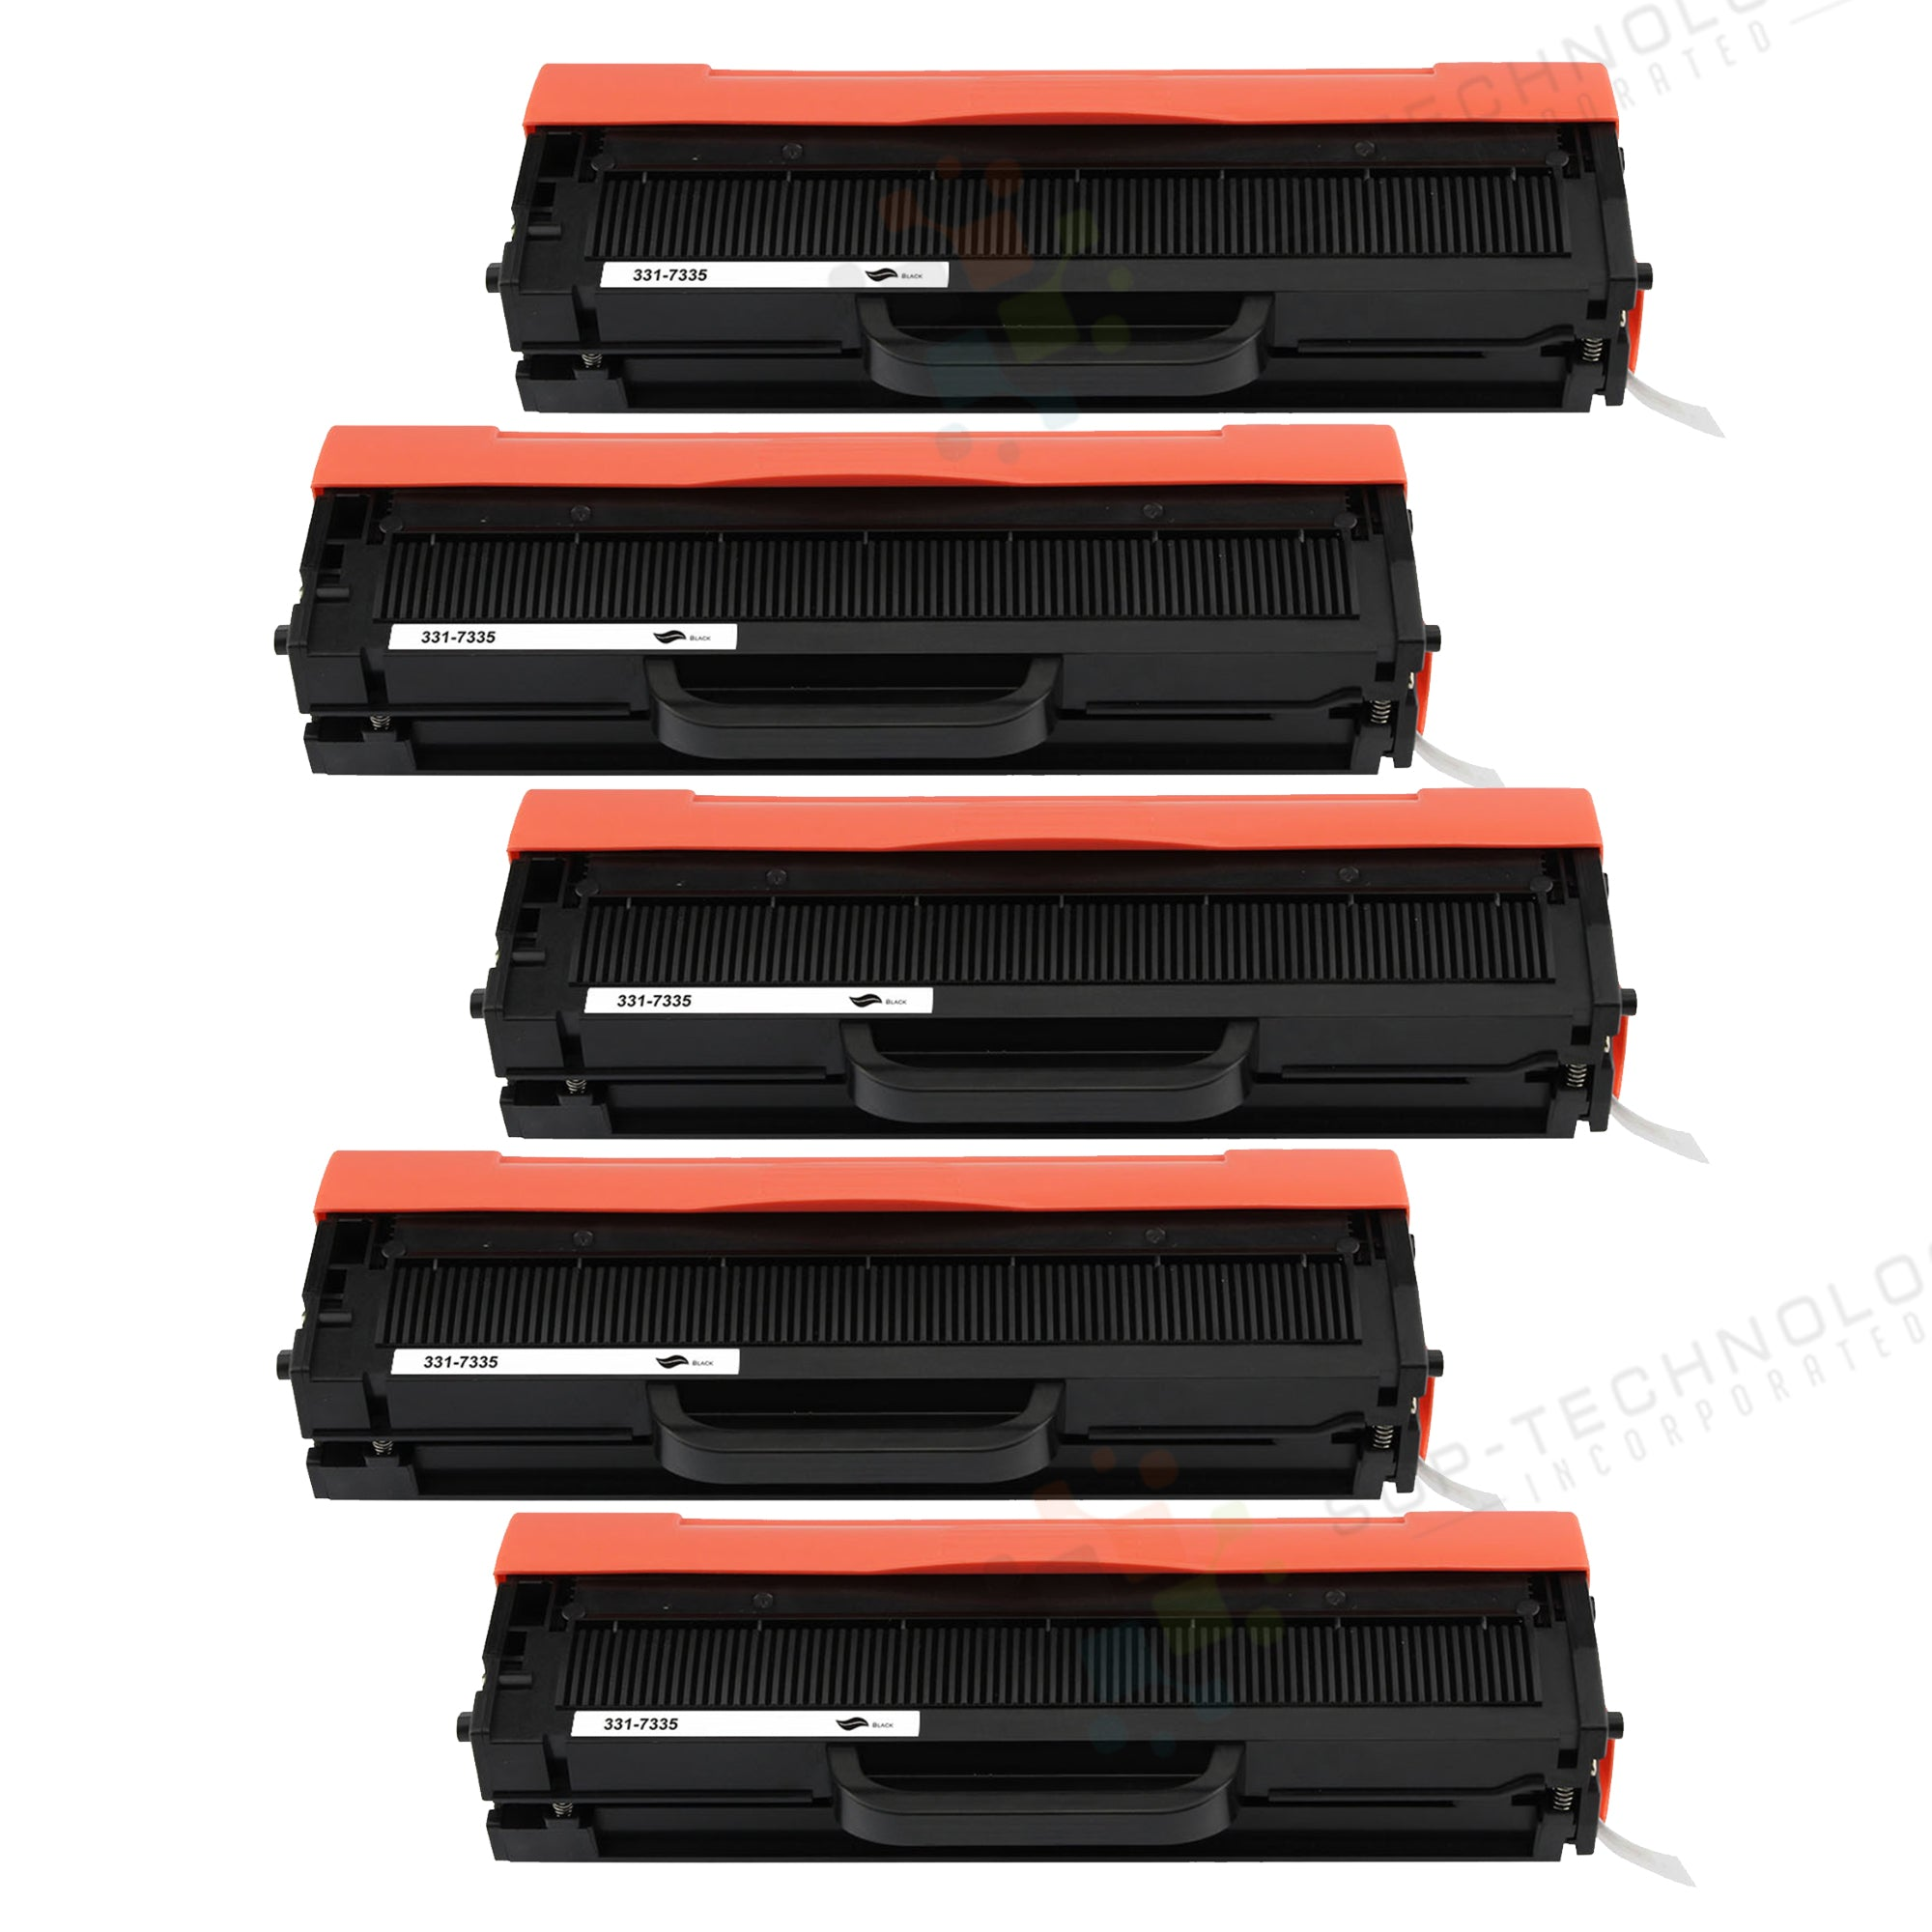 5 Pack Compatible Toner Cartridge Replacement for Dell B1160 - SOP-TECHNOLOGIES, INC.